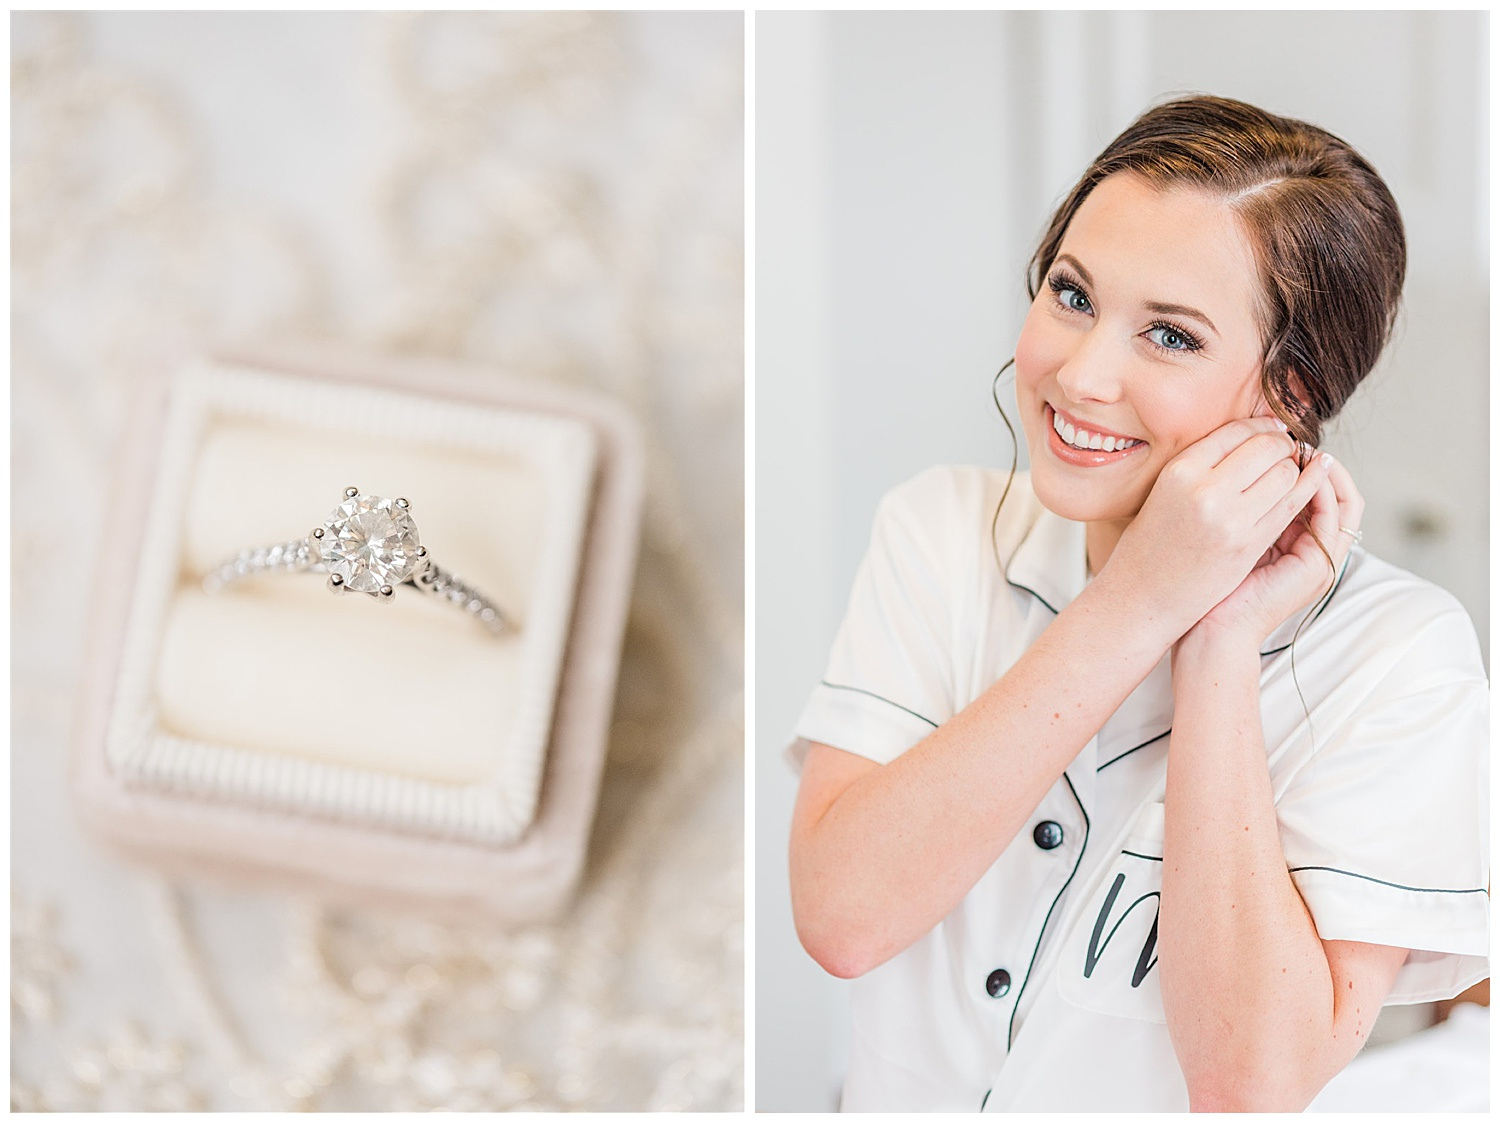 Bride getting ready by putting on earrings and close up of wedding ring